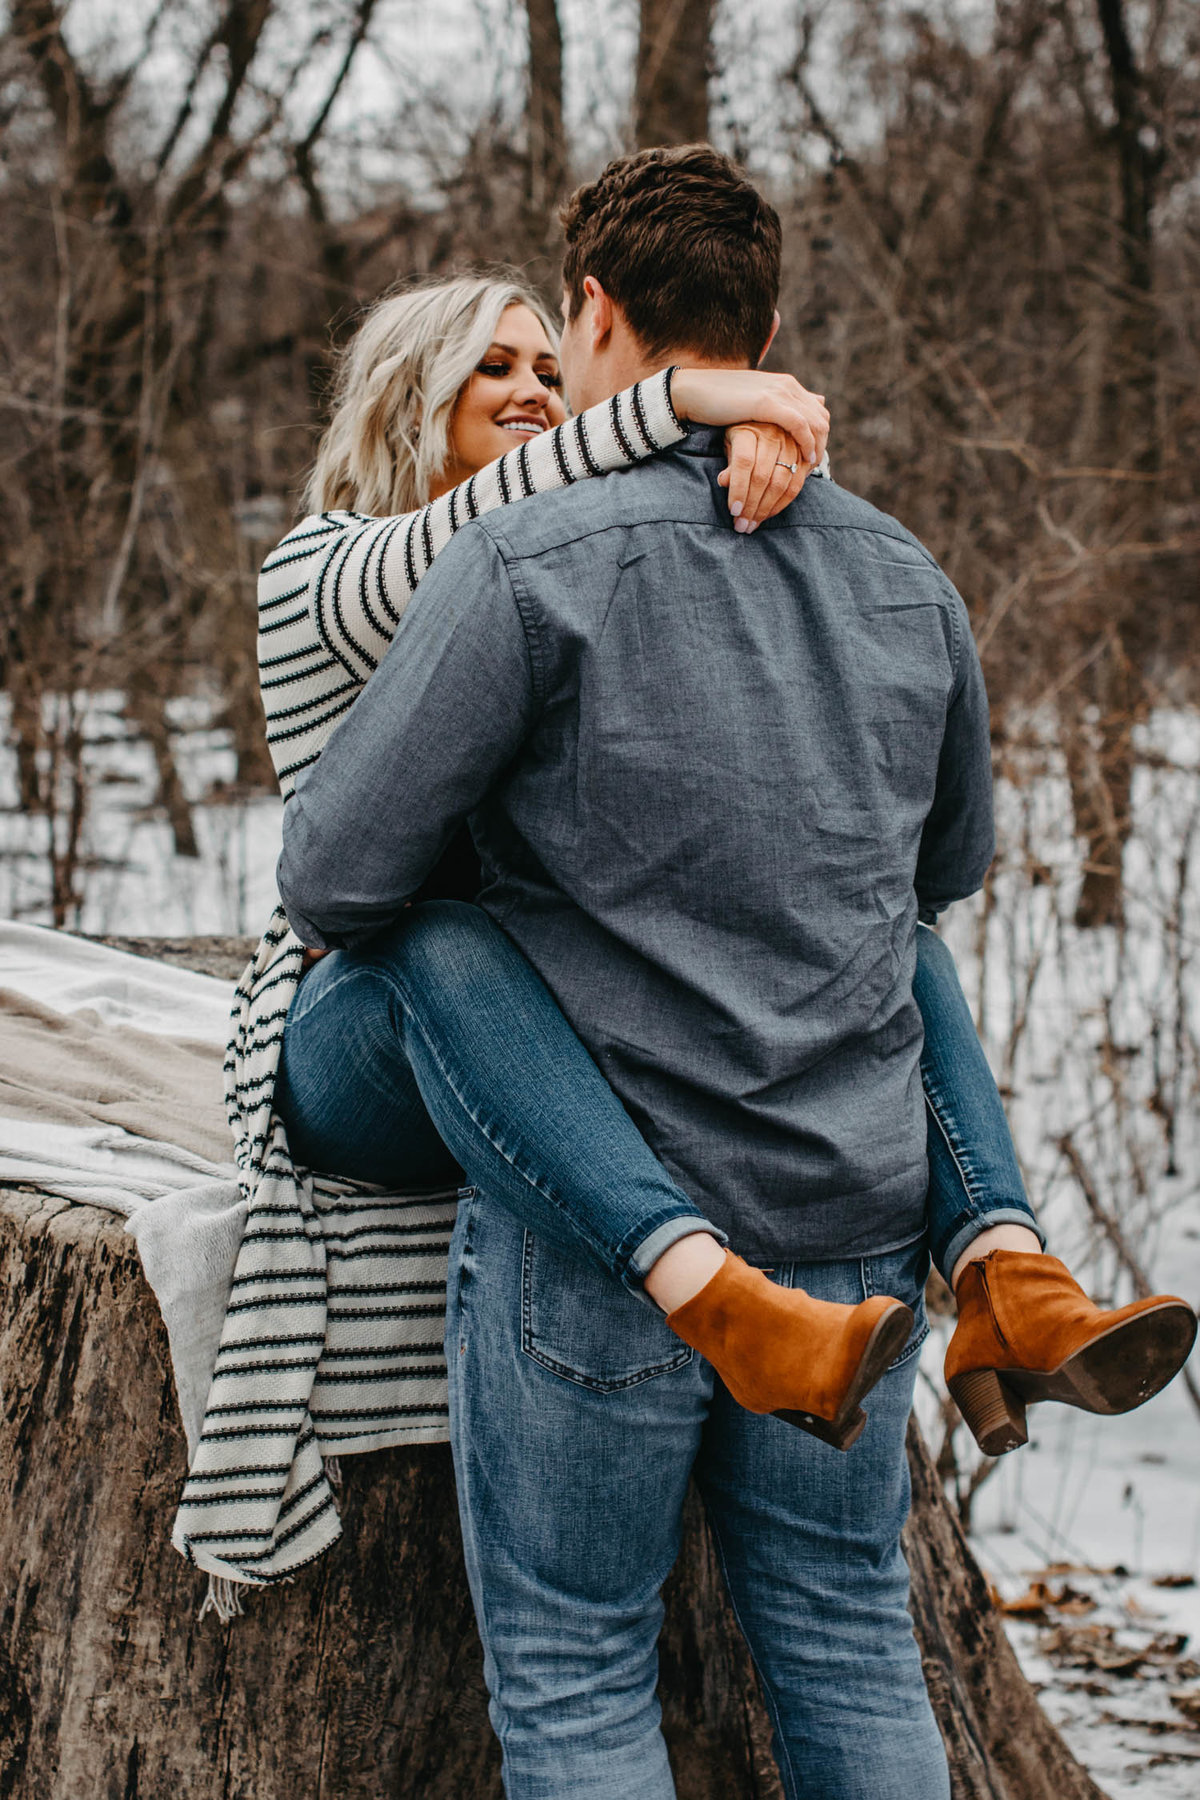 fullersburg-woods-winter-shoot-hinsdale-il-couple-engagement-chicago-180